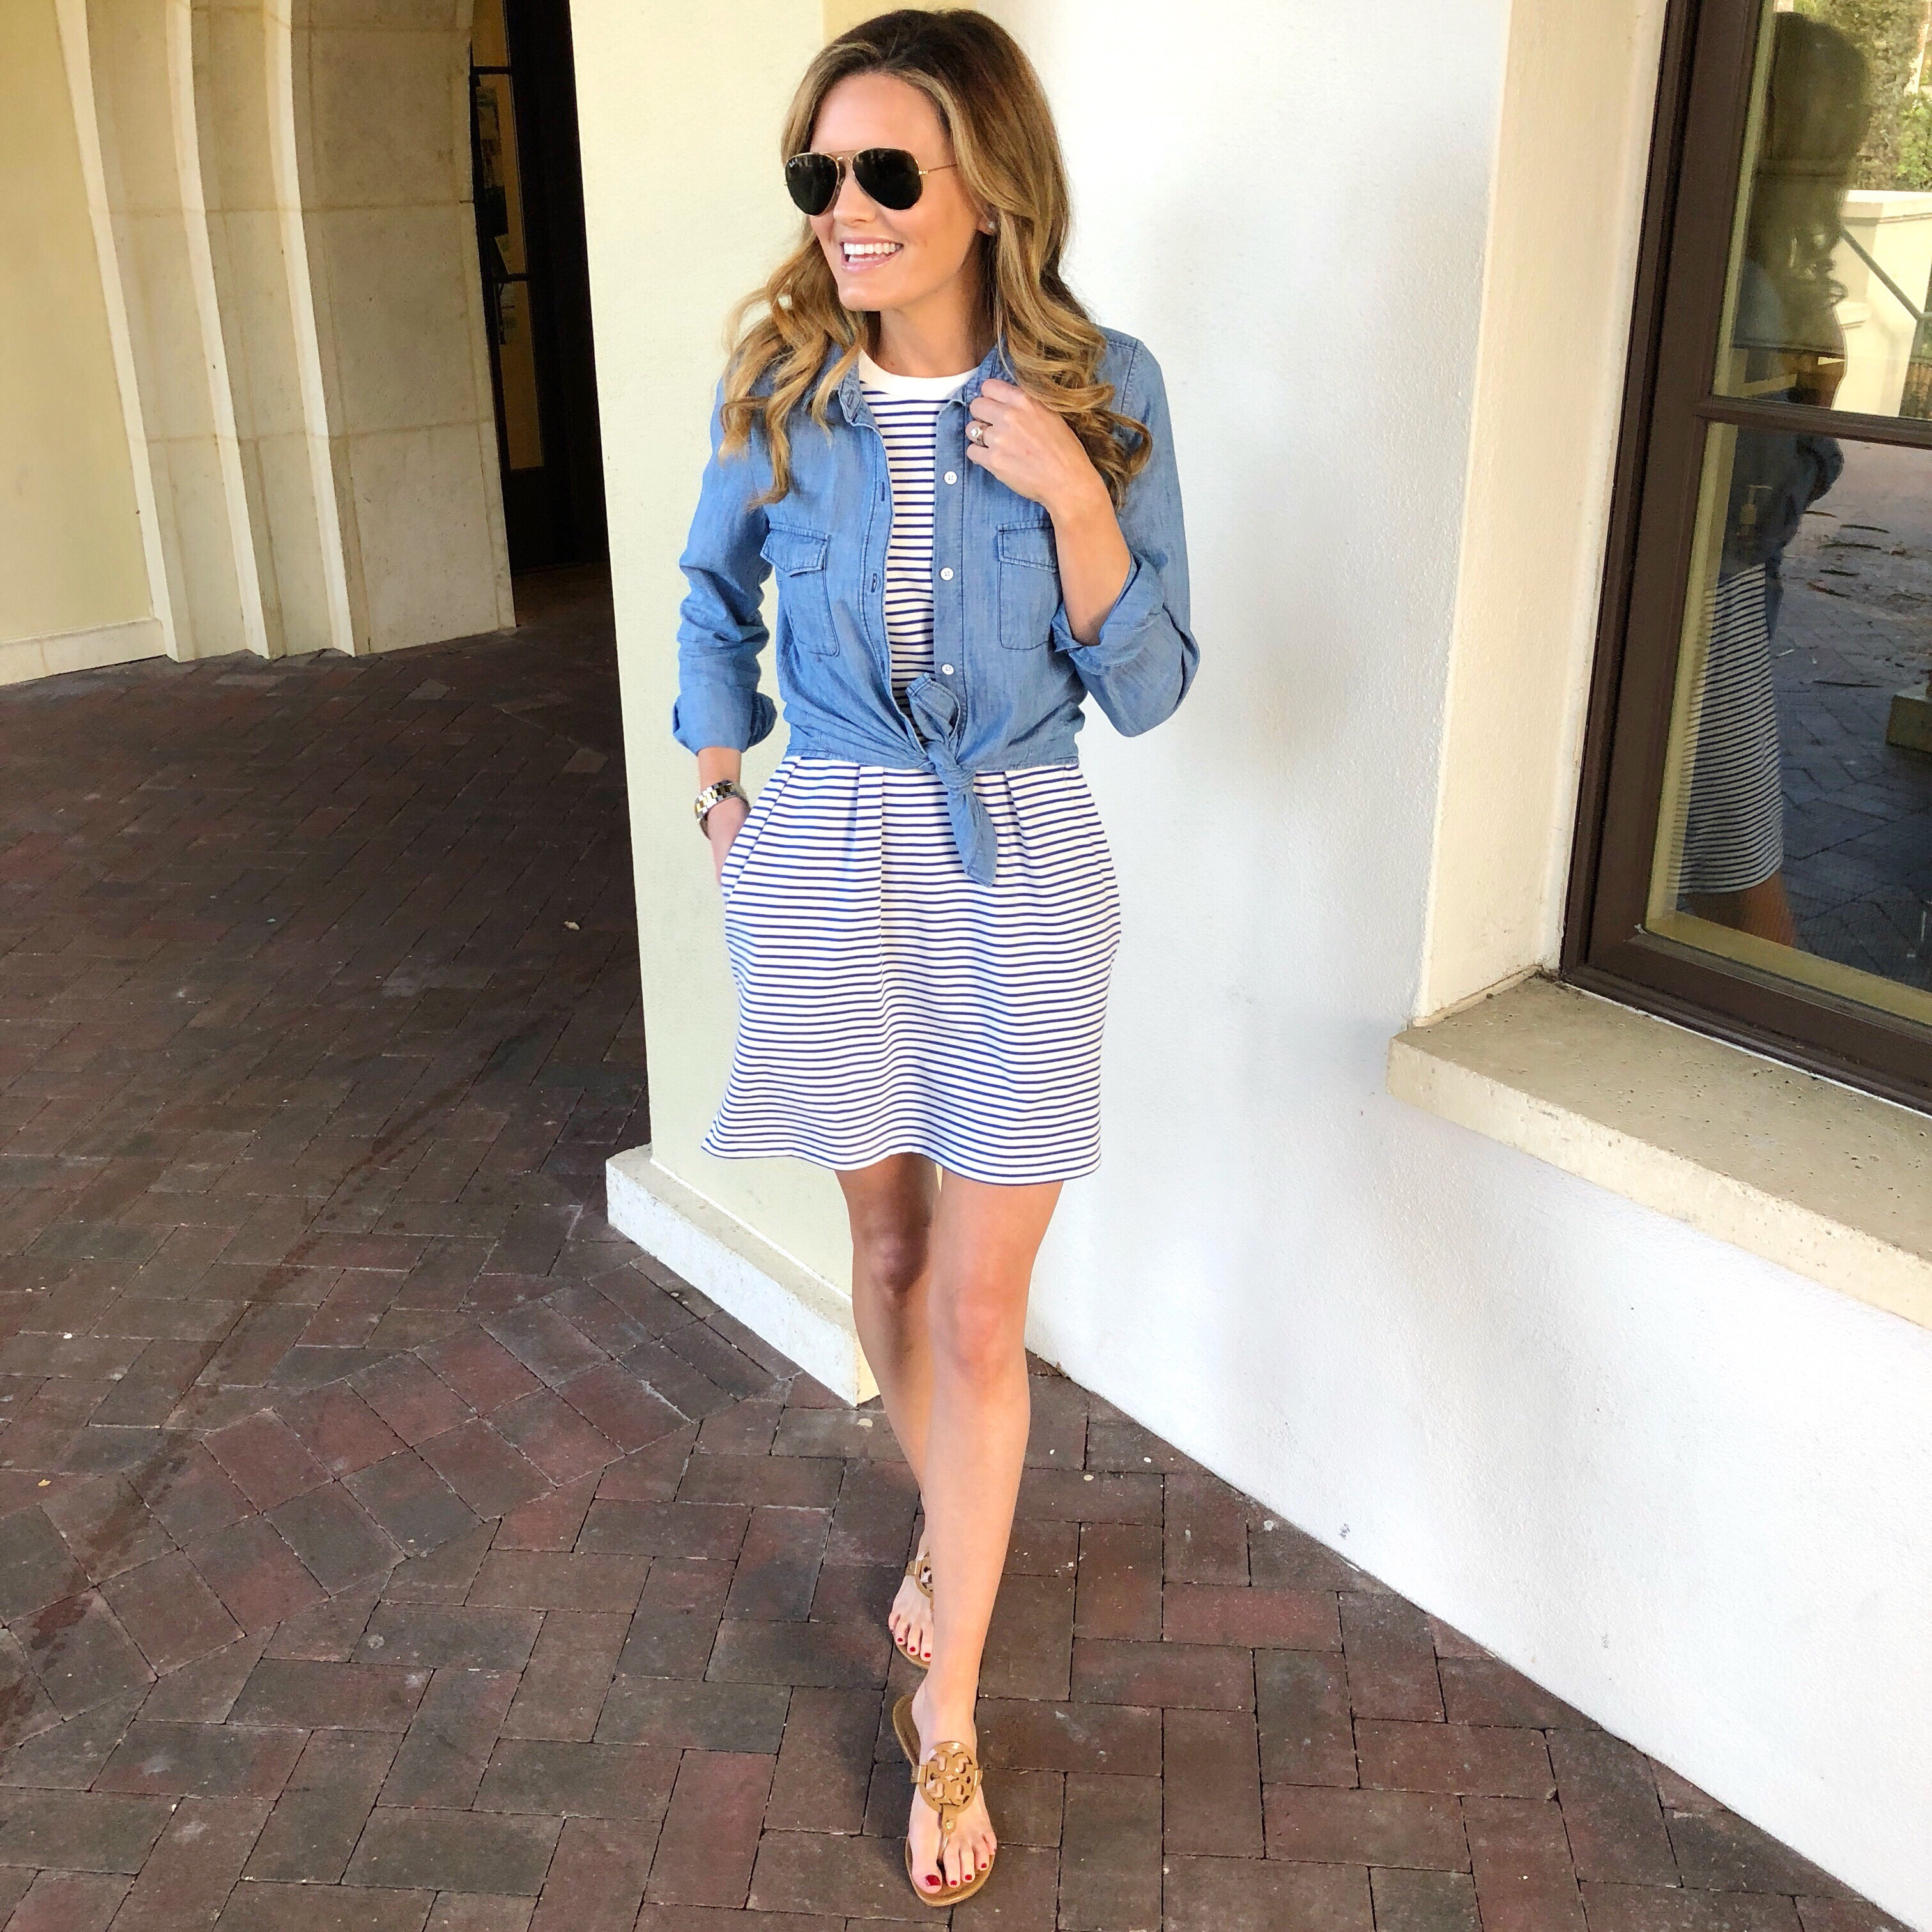 903febad99 Adding a tied chambray top with sandals makes for a fun detail for weekend  wear and finally tying the chambray top around your waist with sneakers is  total ...